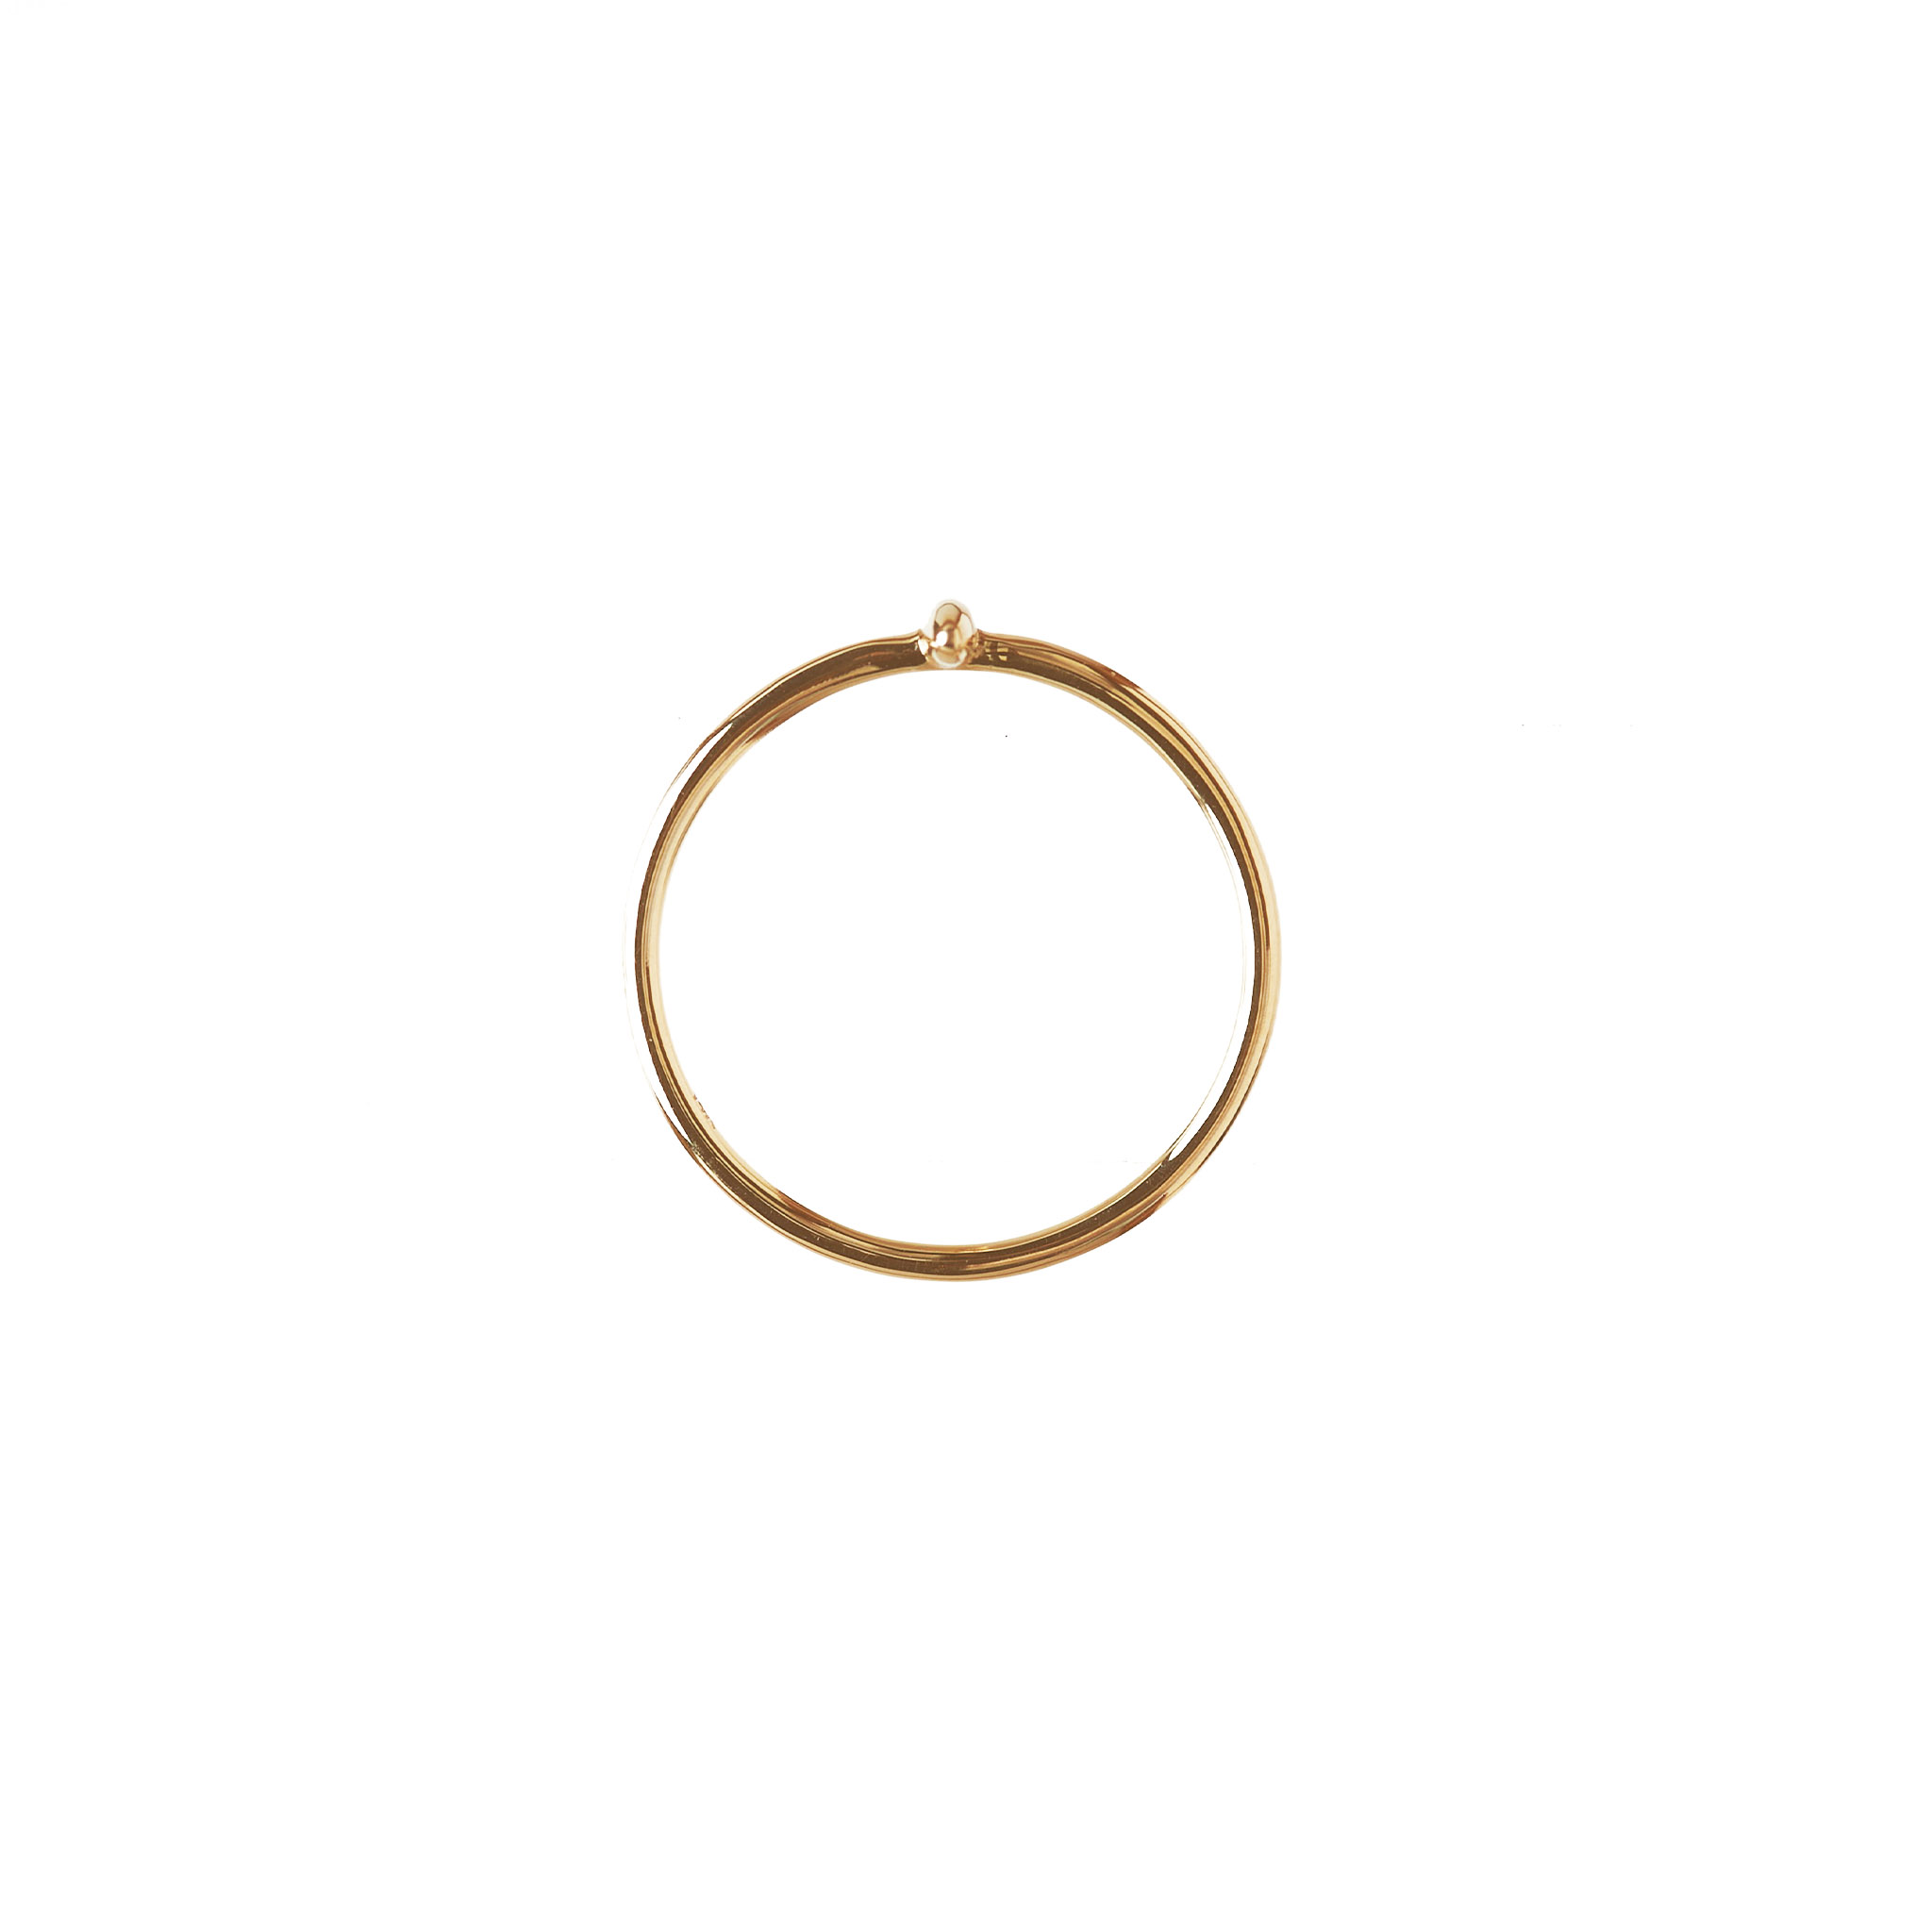 Shoal Ring, 14k Gold by The Straits Finery on curated-crowd.com